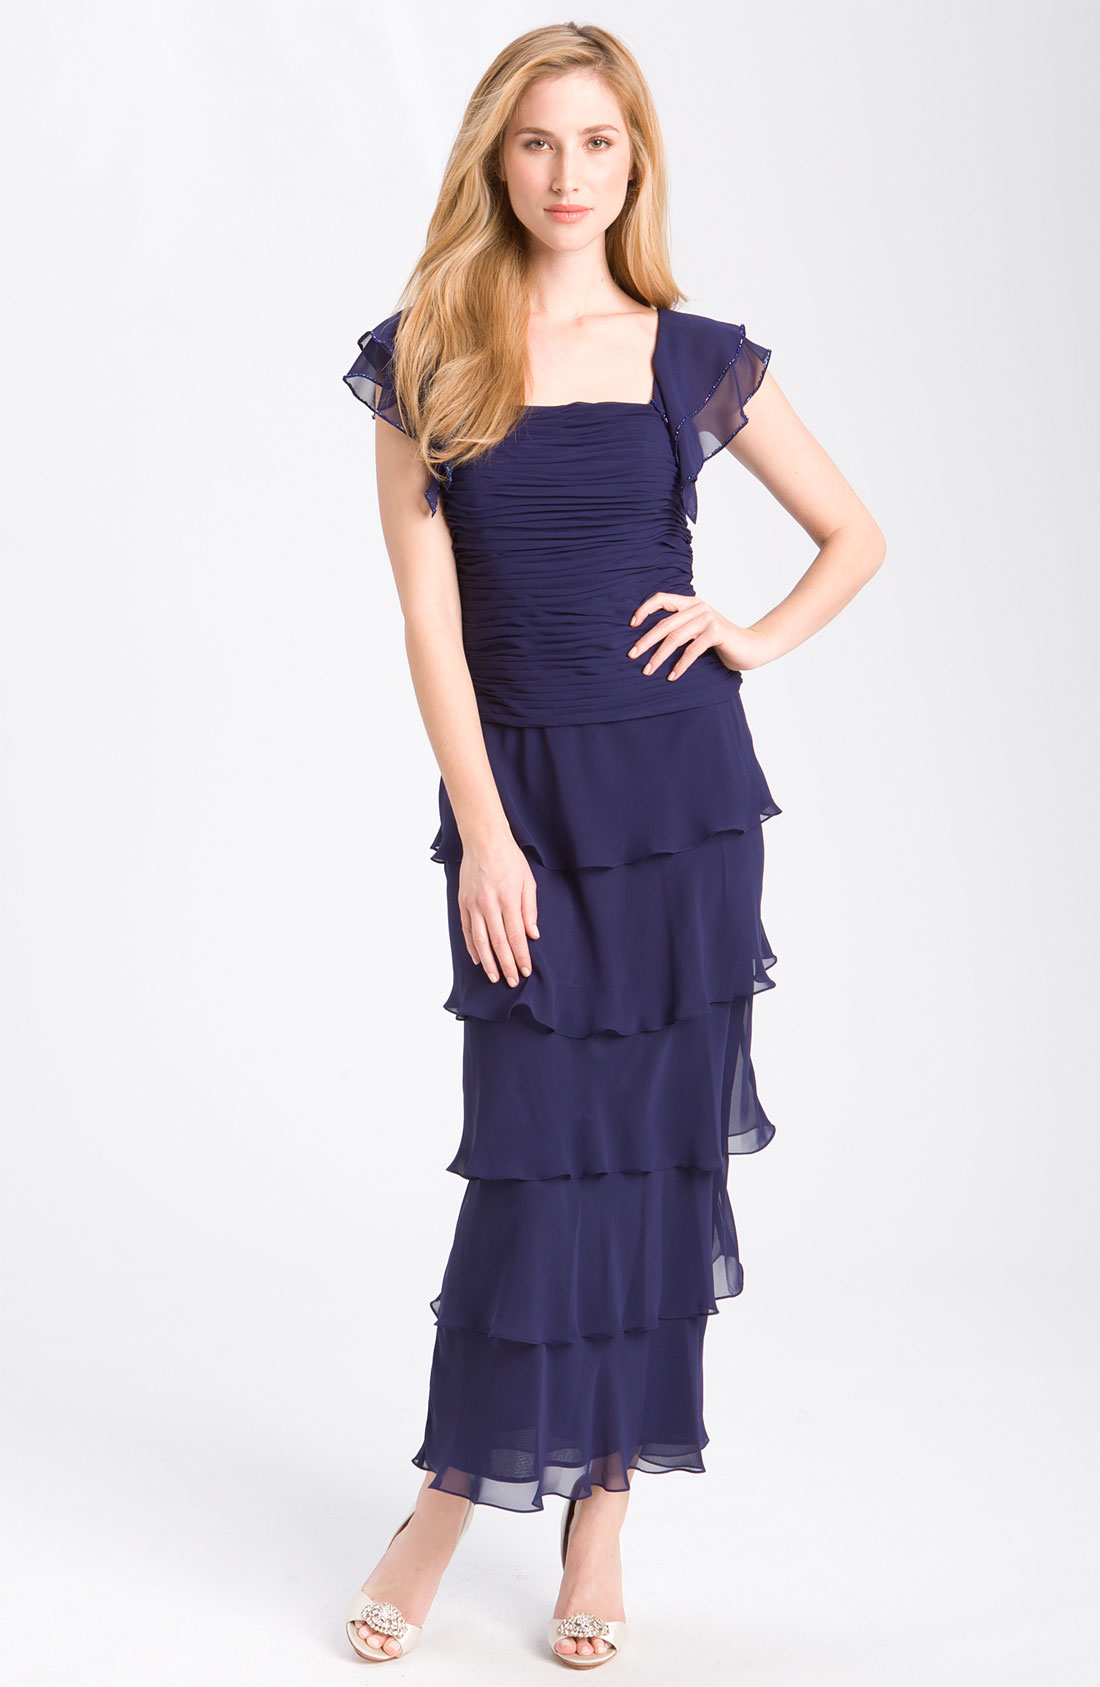 Items of tiered evening dresses. Quick Shop. Pink Appliqued Solid Evening Tiered Sheath Half Sleeve Midi Dress. $ Quick Shop. Purple Tiered Crew Neck Long Sleeve A-line Chiffon Maxi Dress. $ $ Quick Shop. High Low Daytime Paneled Striped Tiered Midi Dress. $